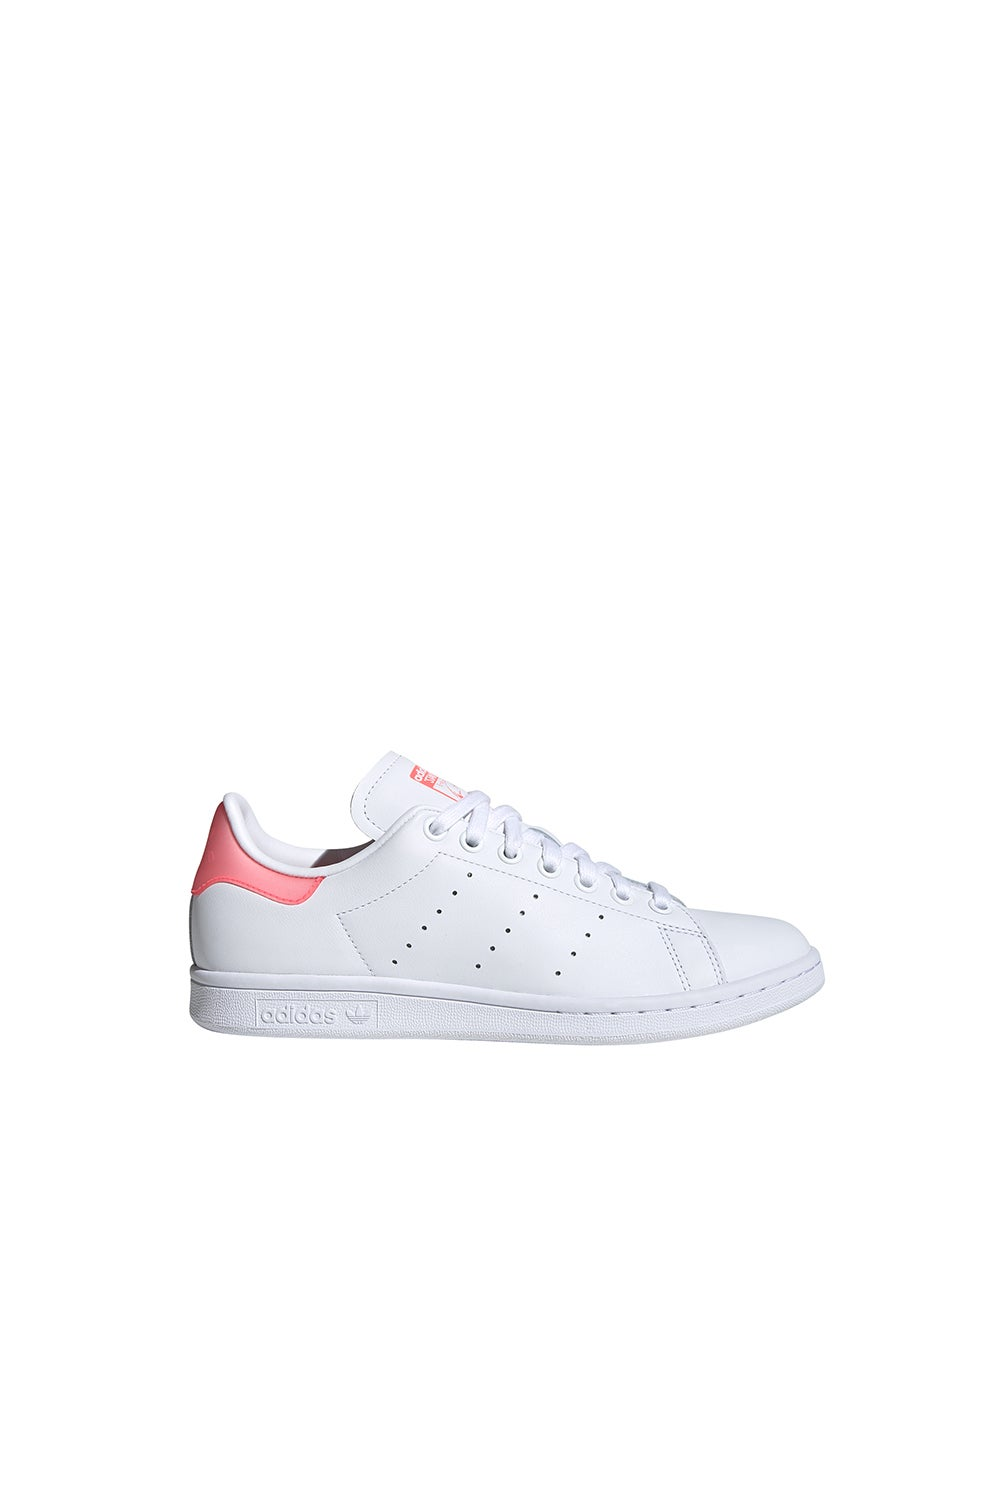 adidas Stan Smith FTWR White/Signal Pink